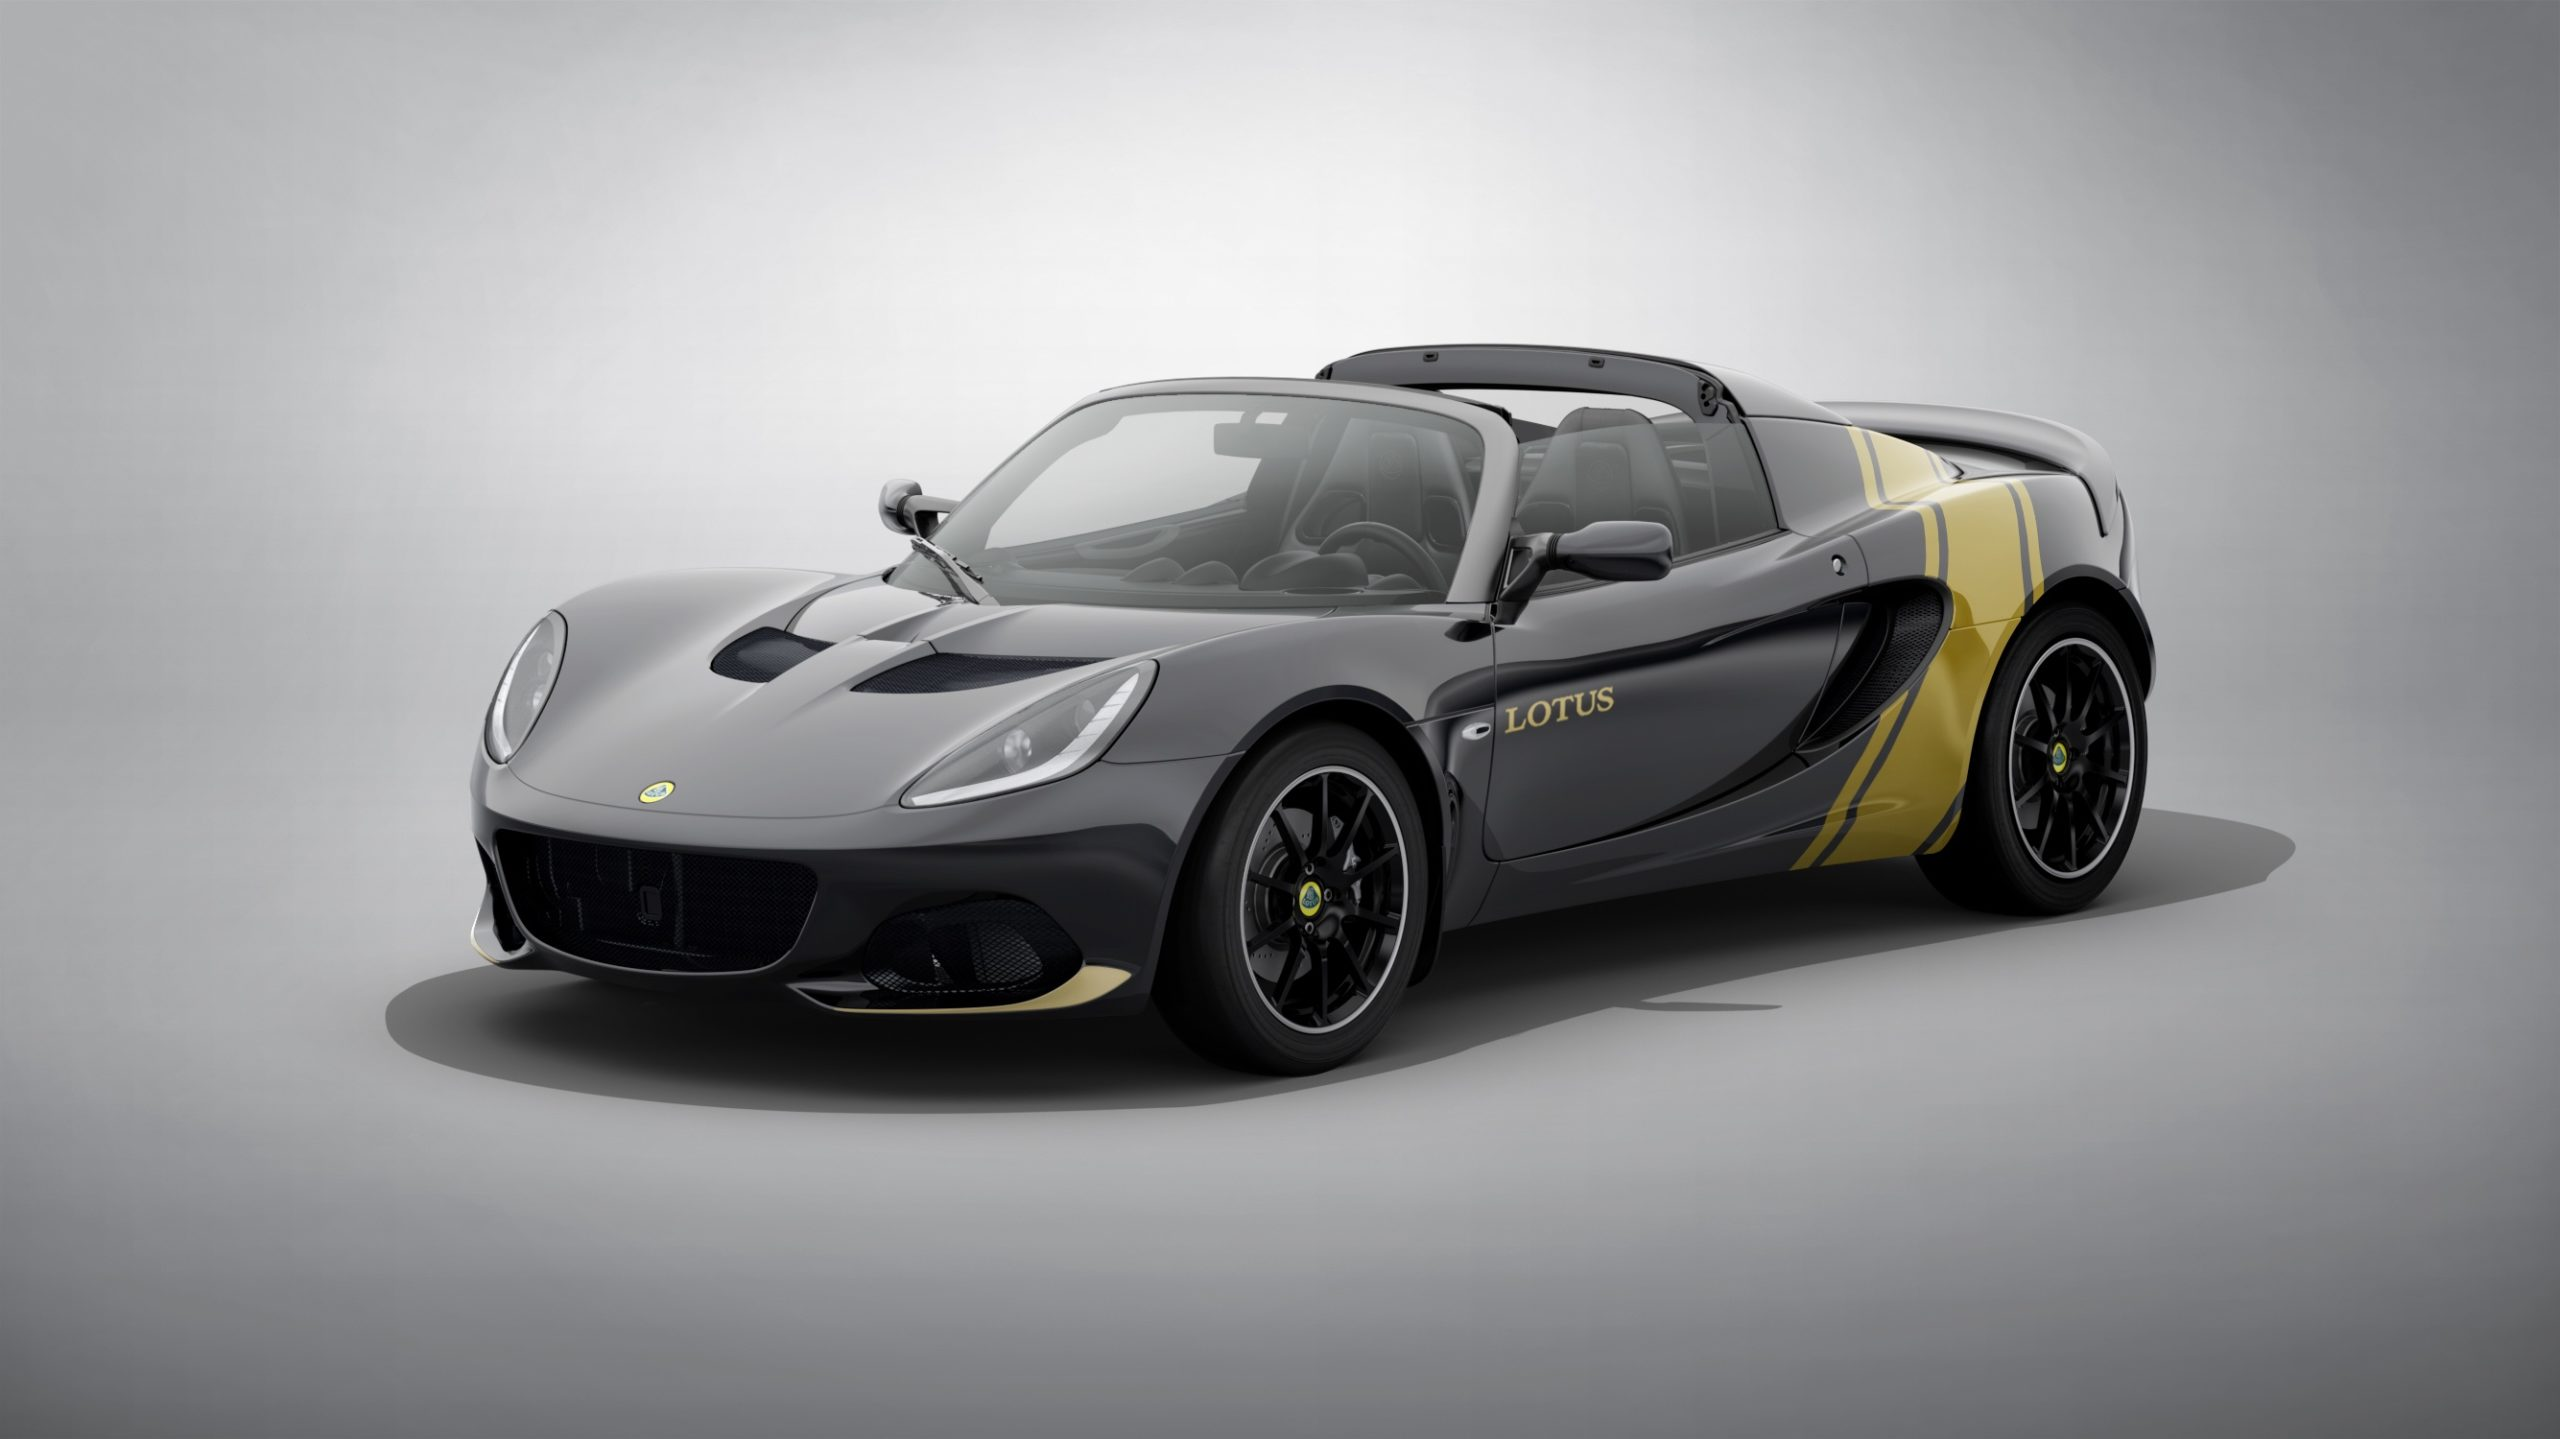 Classic motorsport colours for the Lotus Elise